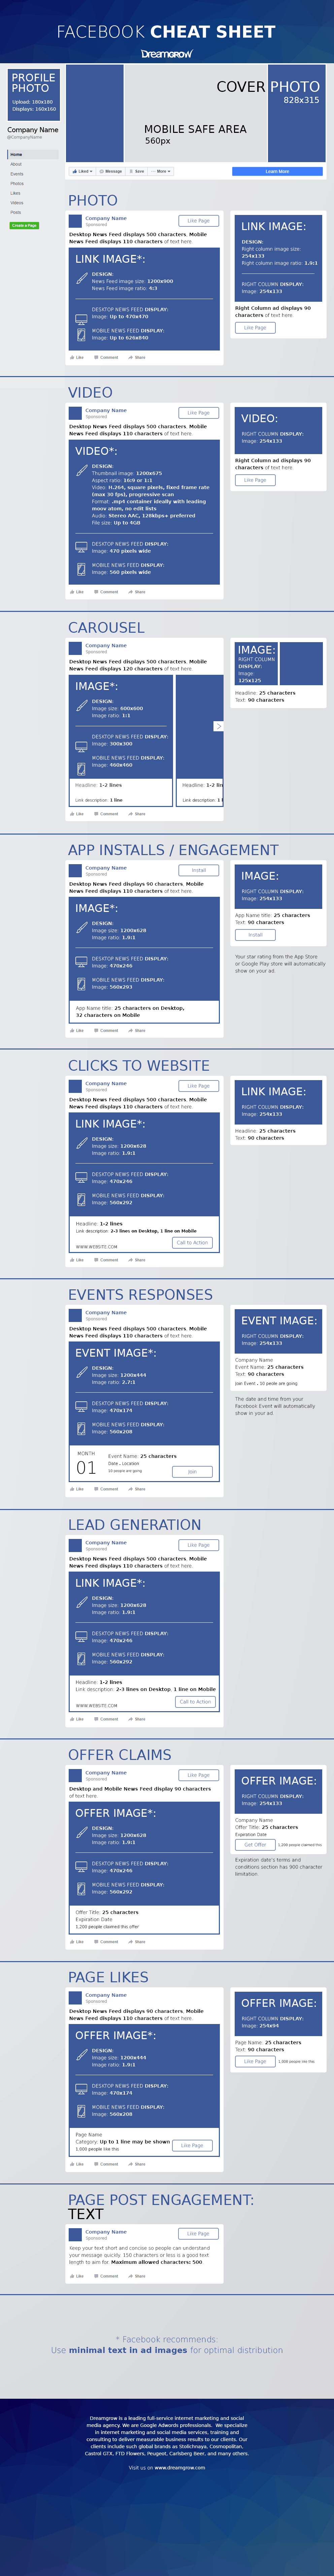 facebook-cheat-sheet-full